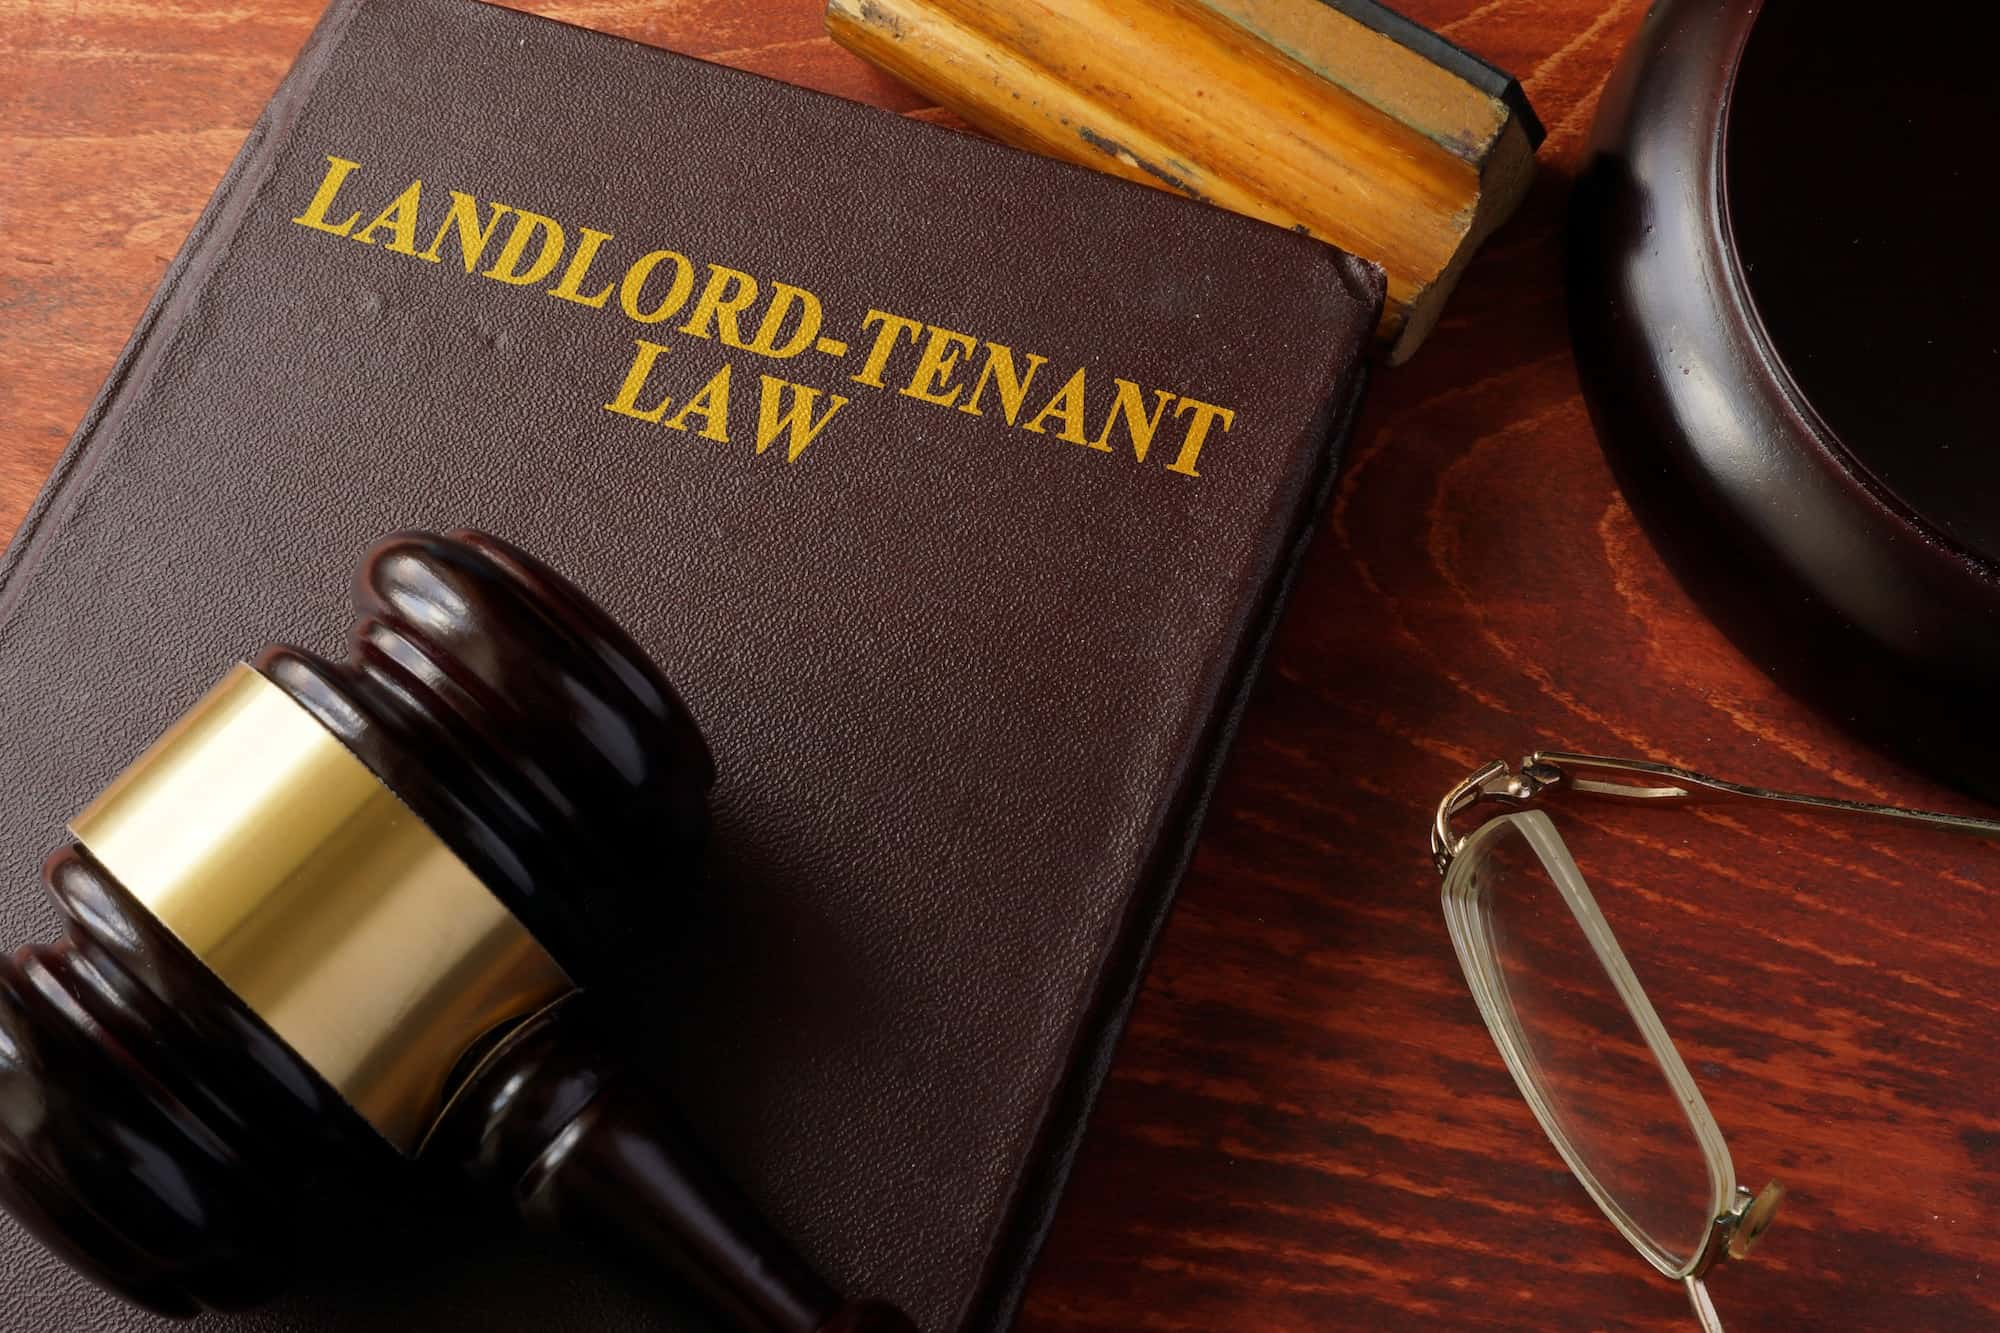 Landlords Rights